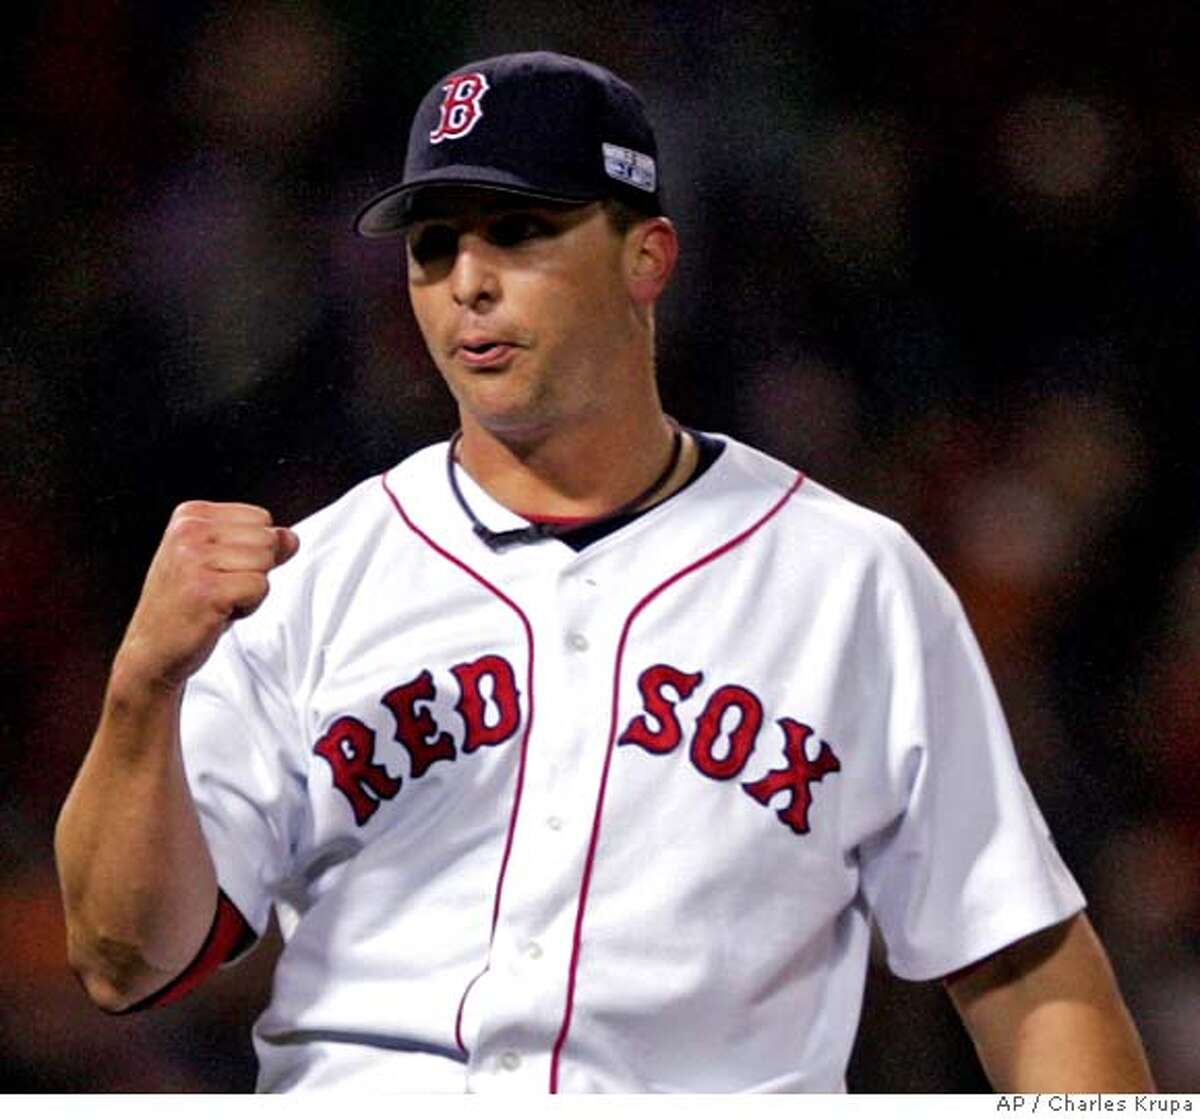 Boston Red Sox relief pitcher Keith Foulke pumps his fist at the end of Game 2 during the World Series in Boston, Sunday, Oct. 24, 2004. The Red sox won 6-2. (AP Photo/Charles Krupa) Ran on: 10-31-2004 Keith Foulke had the support of at least one reader for MVP of the World Series. Ran on: 10-31-2004 Keith Foulke had the support of at least one reader for MVP of the World Series.